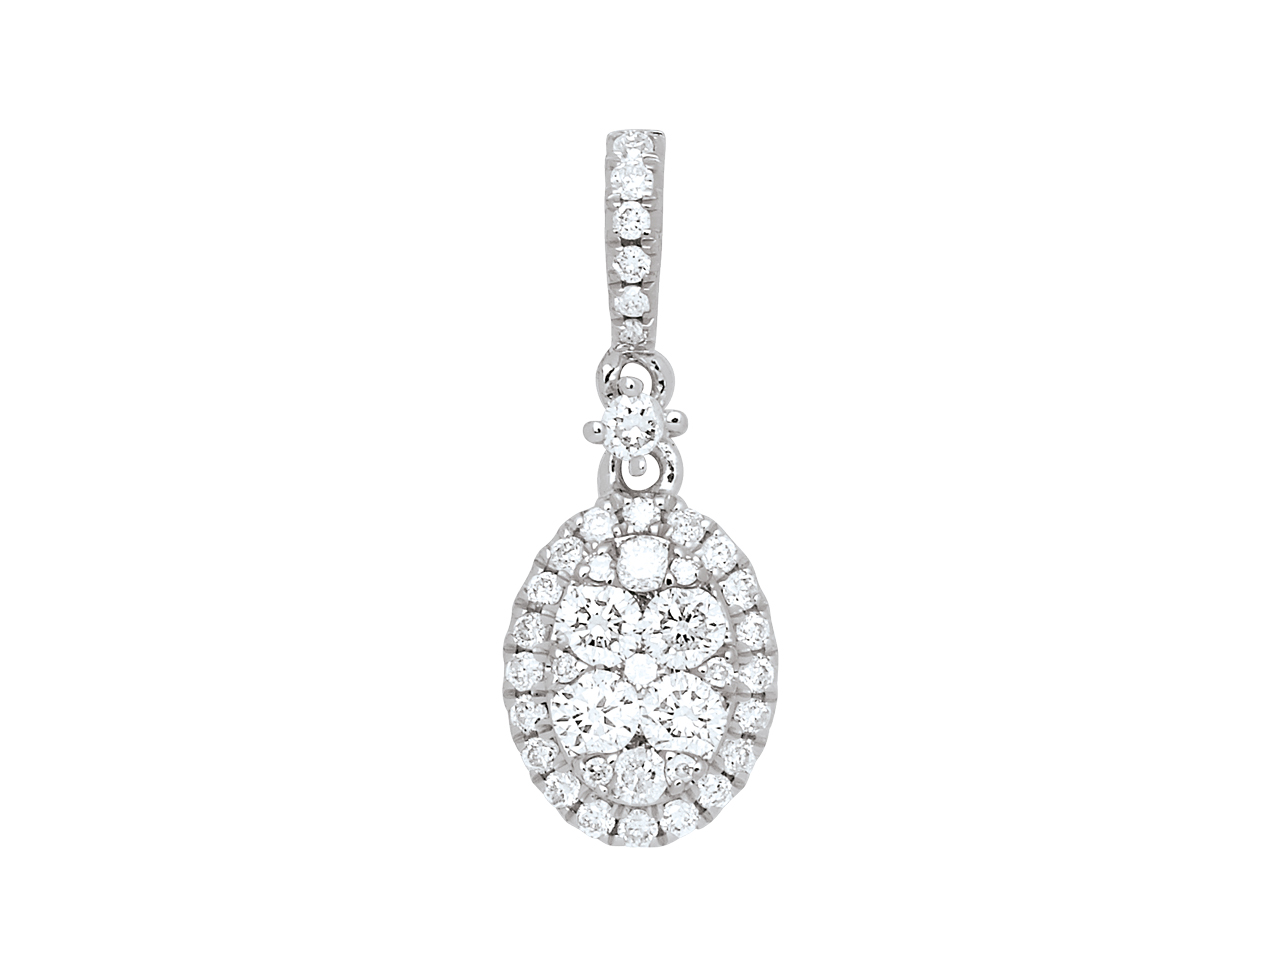 Pendentif ovale, Diamants 0,39ct serti illusion, Or Gris 18k